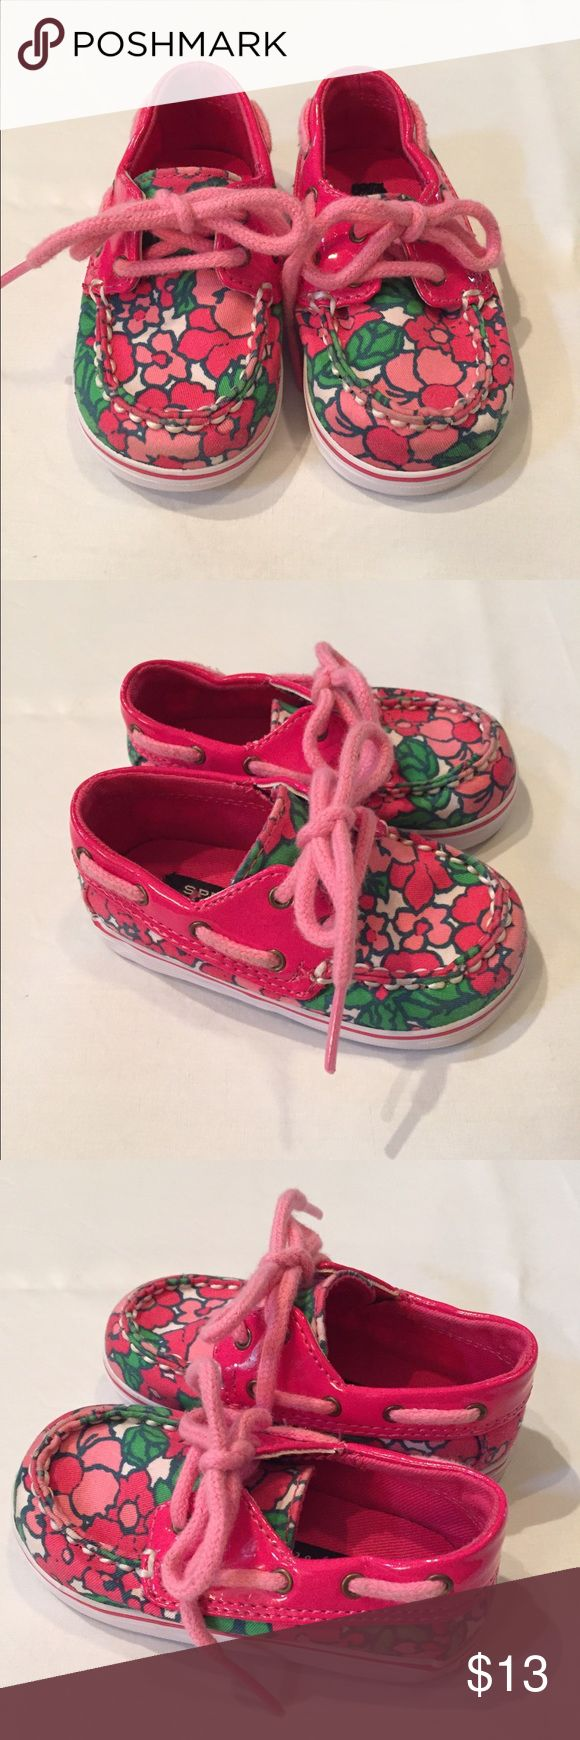 Toddler Girl's Sperry Top Sider Shoes, Size 3M Toddler girl's Sperry Top Siders pink floral shoes, size 3M, great preowned condition Sperry Top-Sider Shoes Sneakers